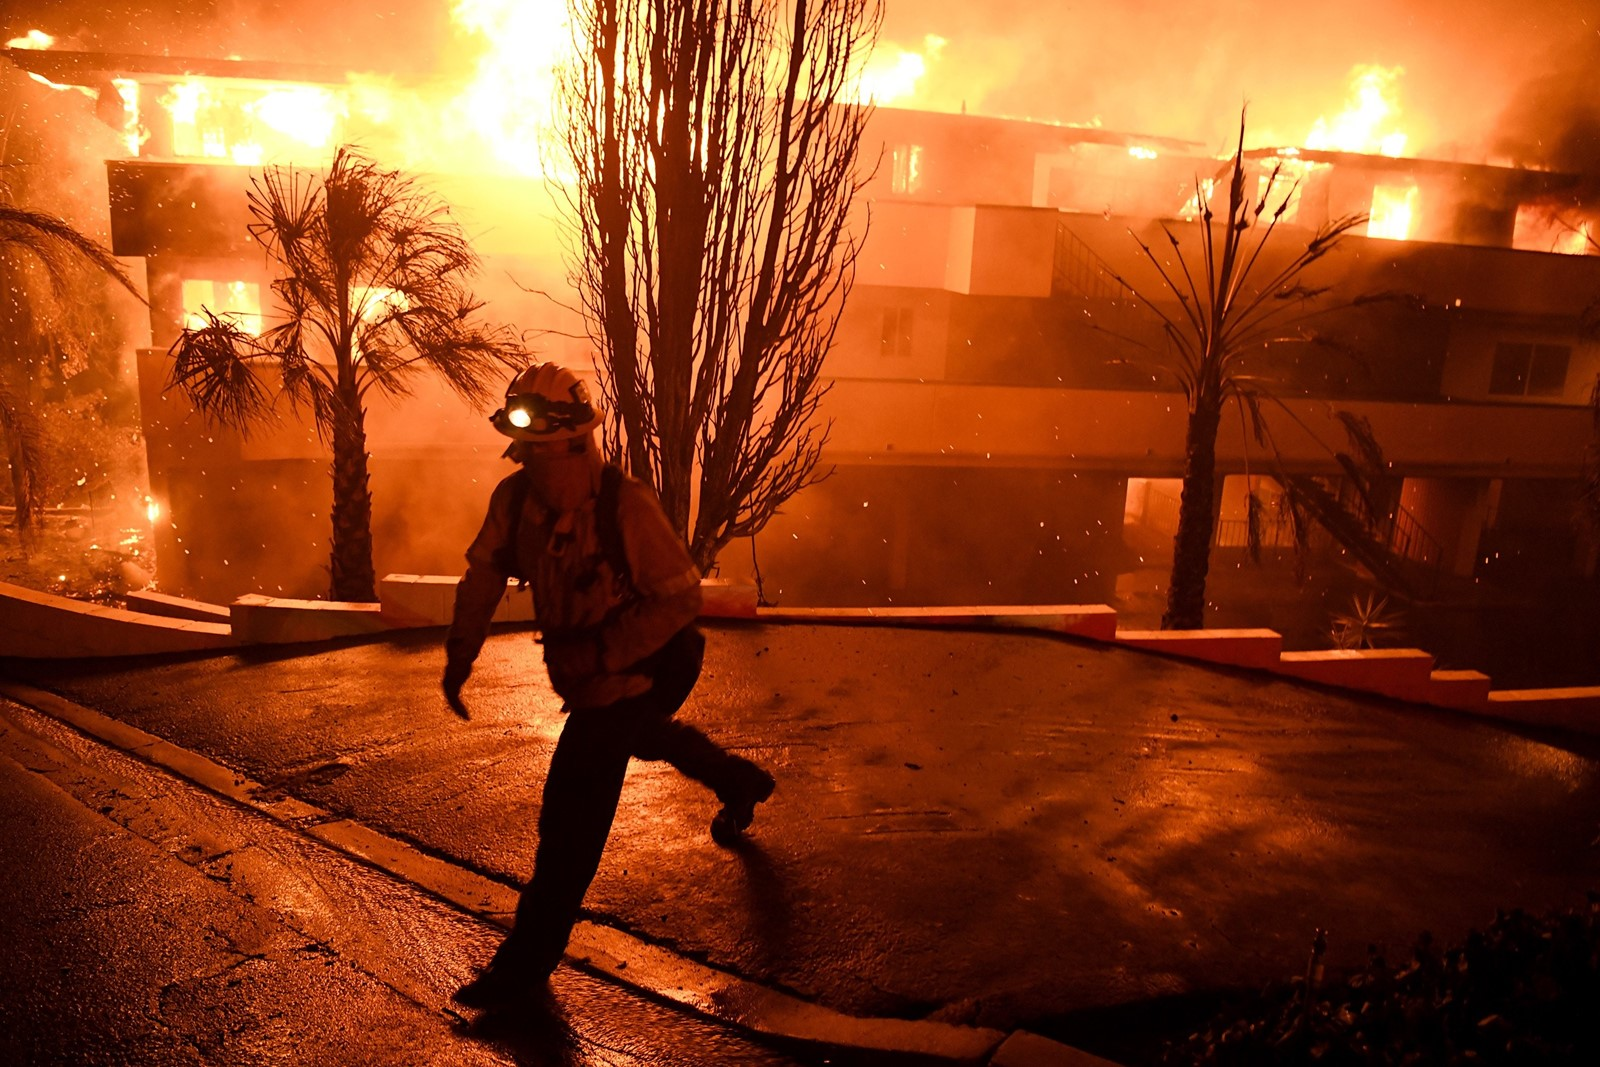 A firefighter at a burning apartment building in Ventura, where the Thomas fire charred 55,500 acres and forced 27,000 to flee. — Photograph: Michael Owen Baker/Los Angeles Times.